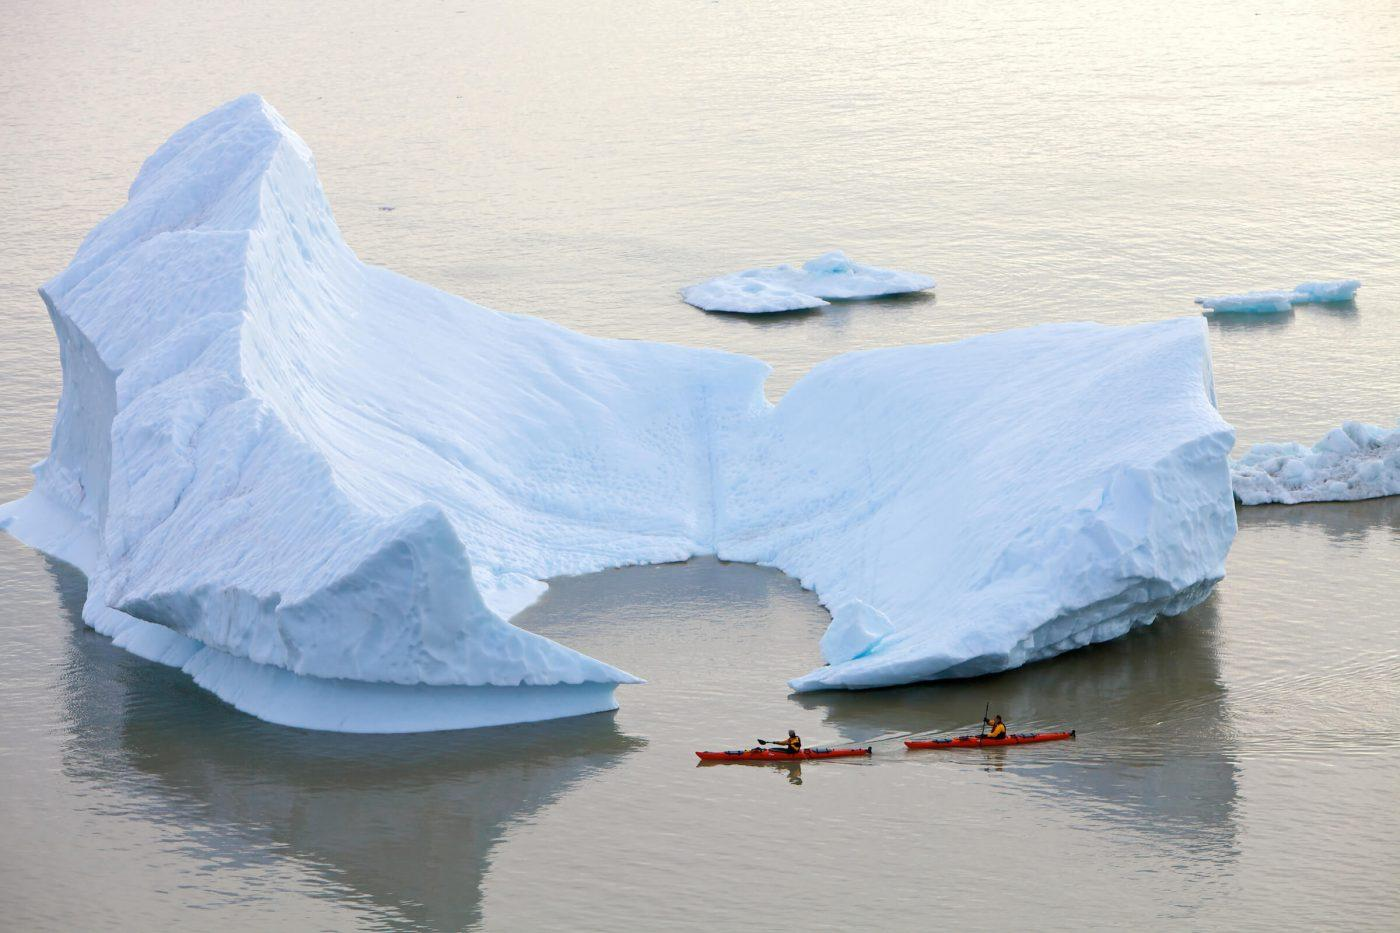 Kayakers rounding an iceberg in East Greenland. Photo by A Taste of Greenland